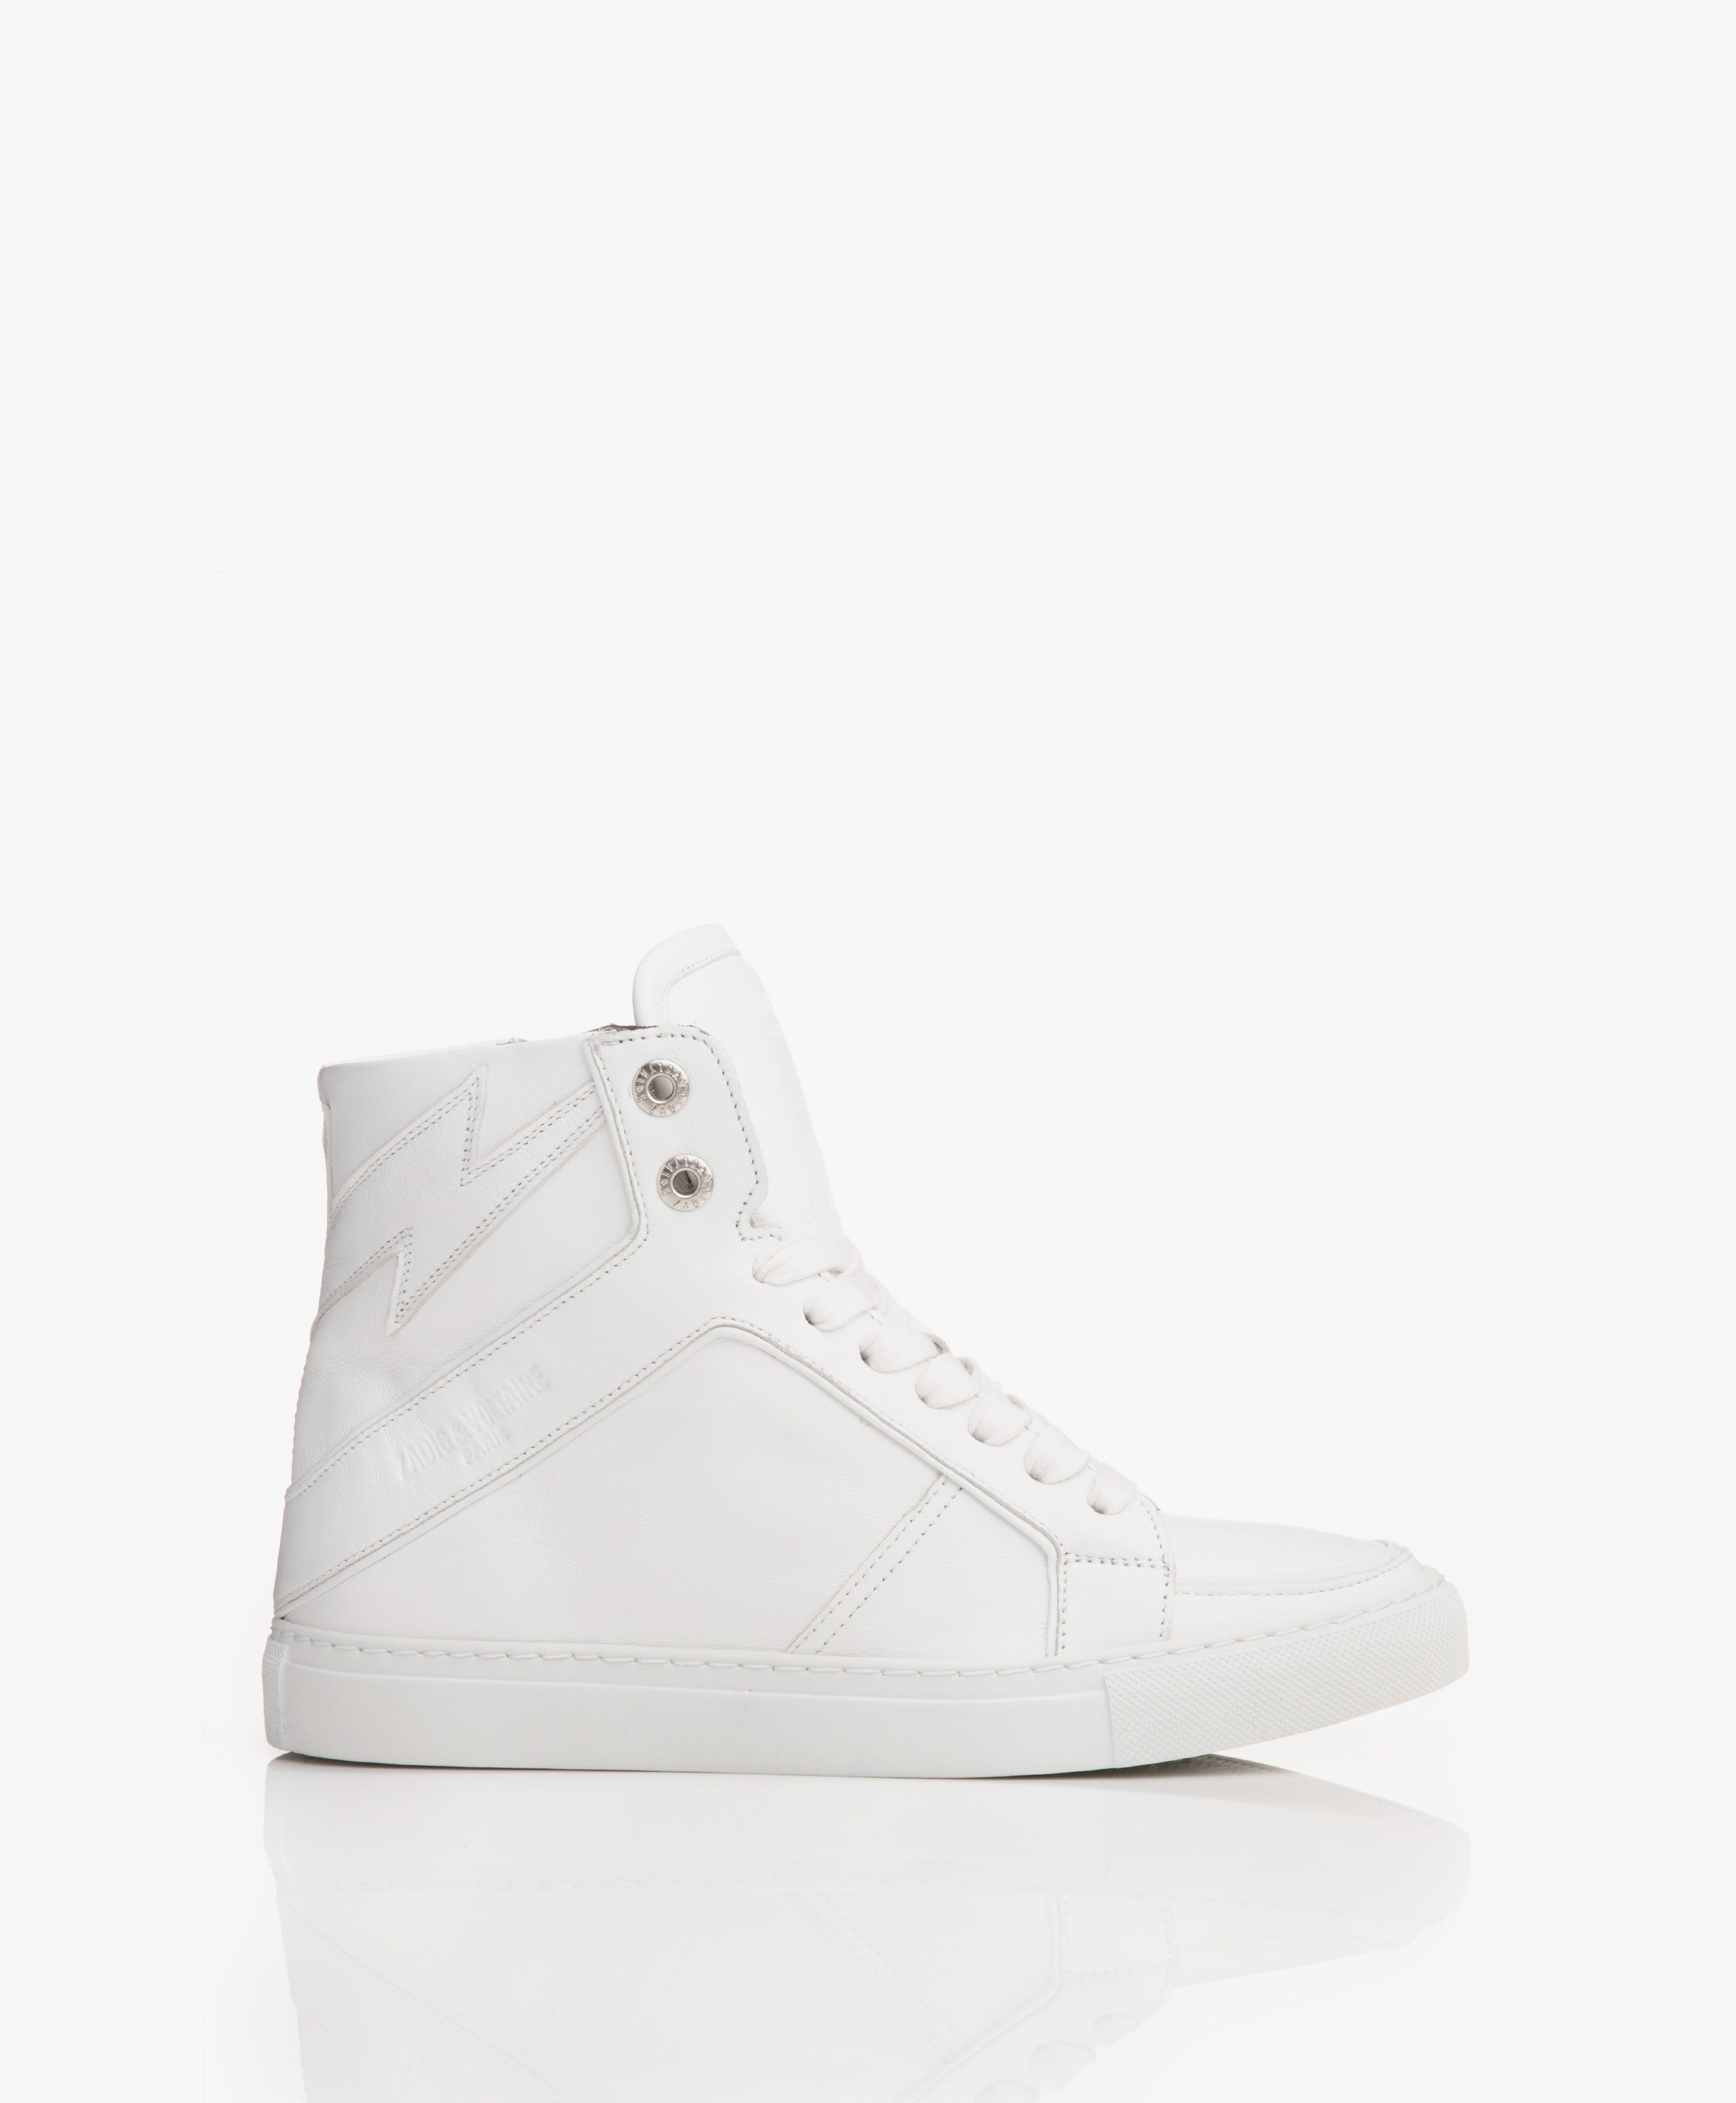 Leren Gympen Zadig & Voltaire High Flash Leren Sneakers - Wit | Sneaker